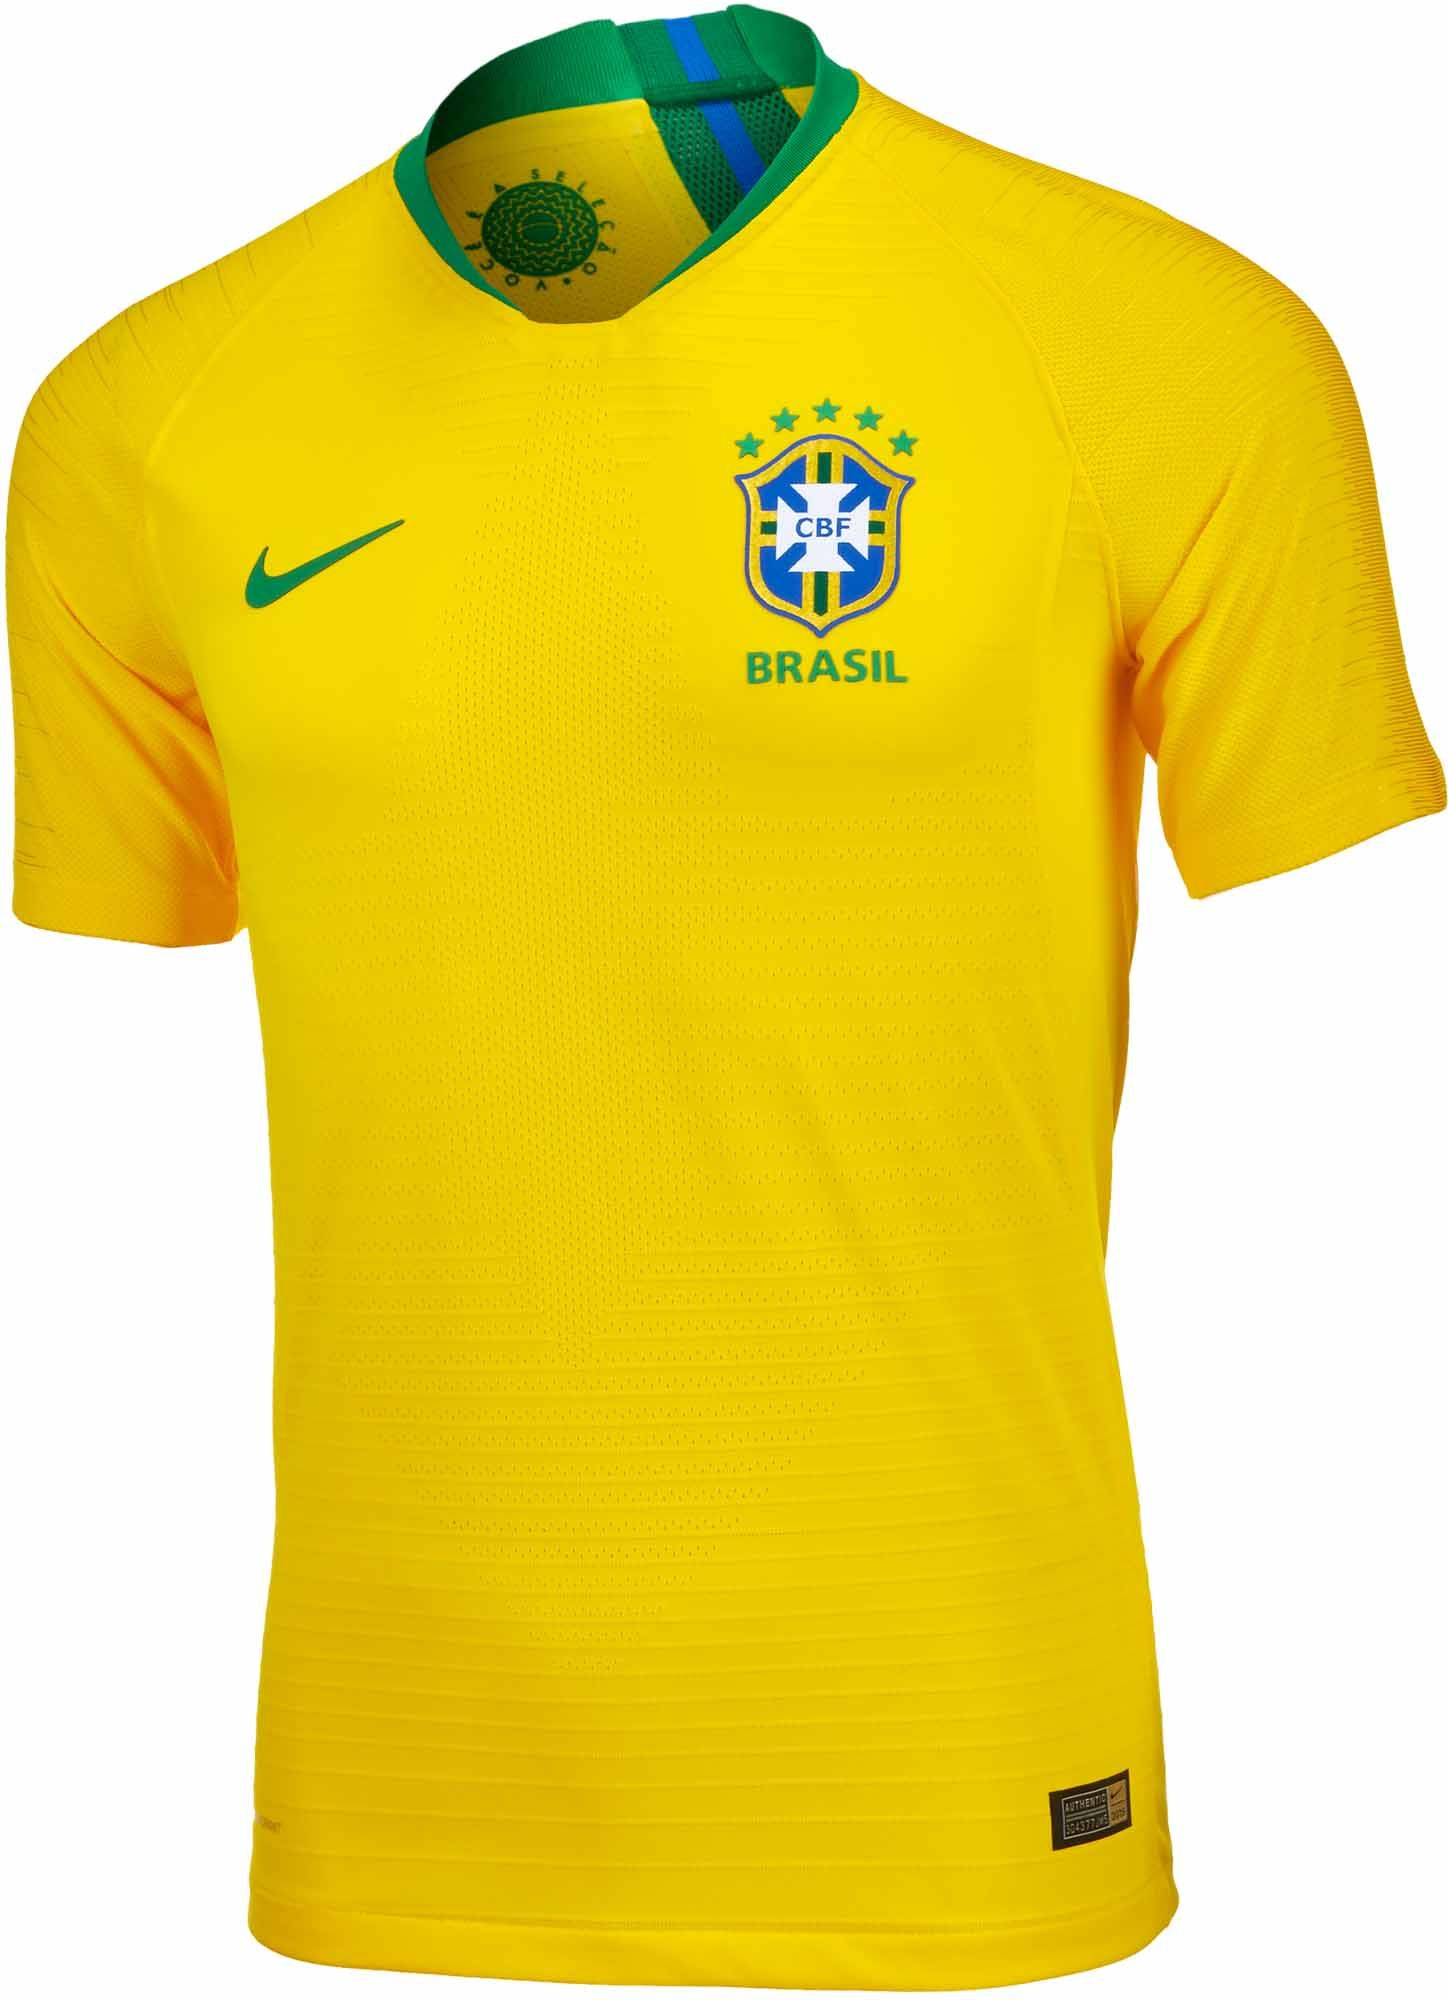 2018 19 Nike Brazil Match Home Jersey. Hot at SoccerPro. 4de4fdc1744ed